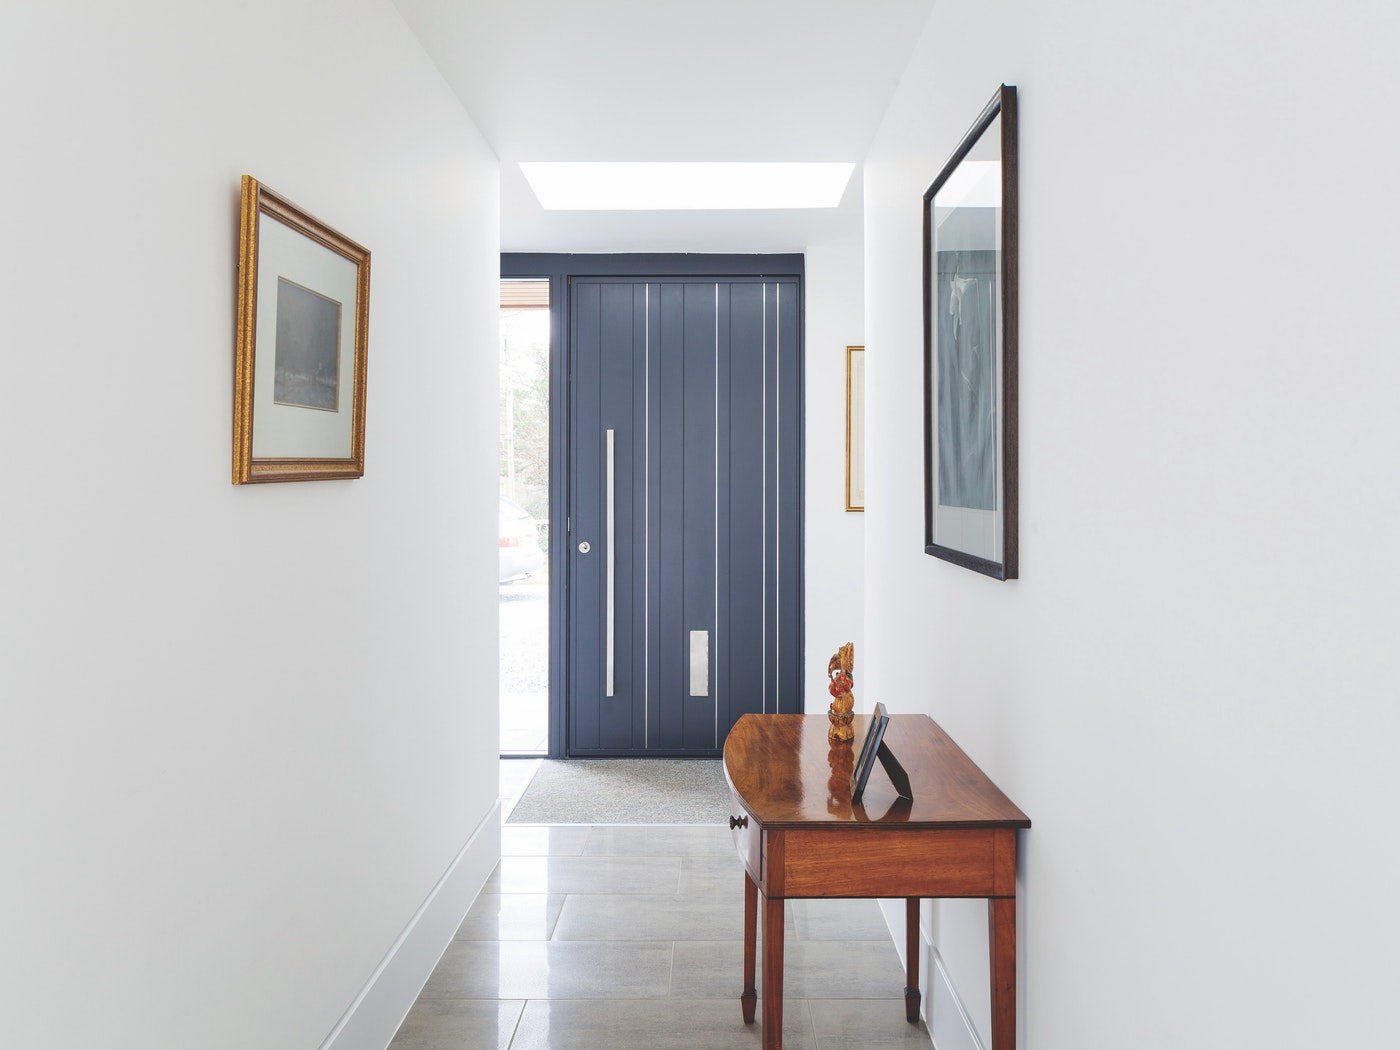 Bright white interiors are a popular choice for grey doors with good reason